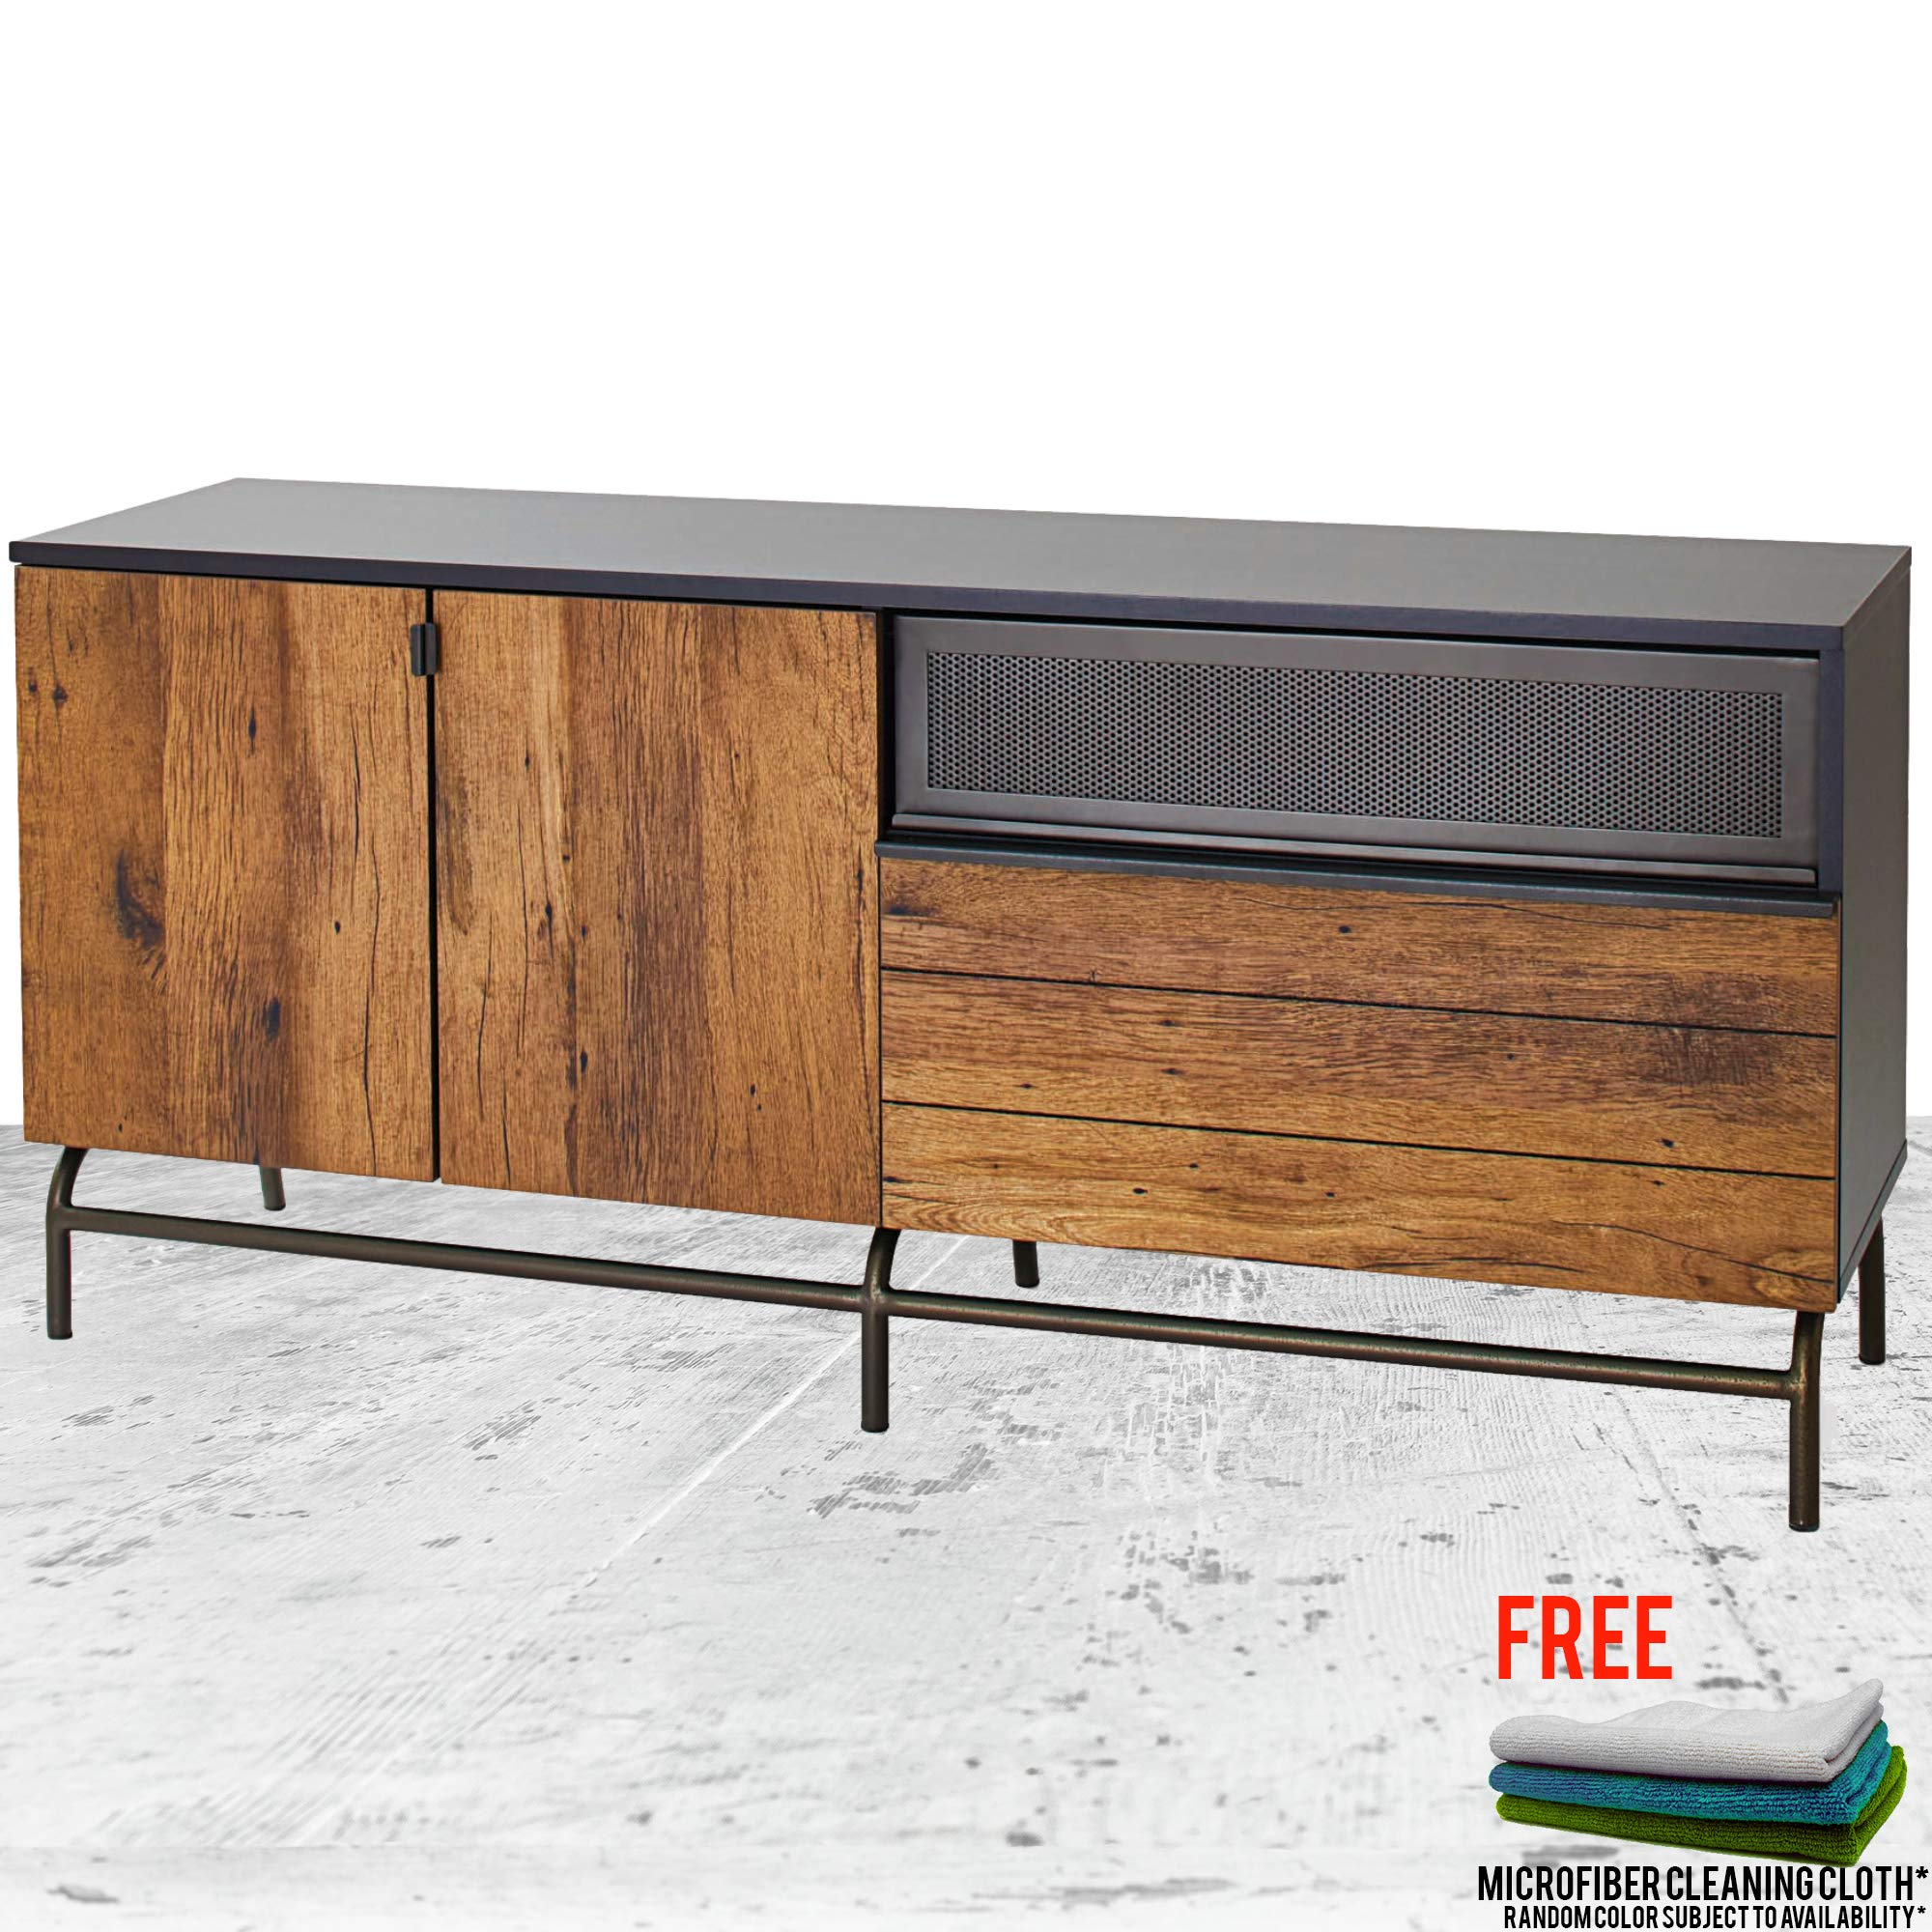 Lindon Place Entertainment Credenza for TV's up to 60 inches, Vintage Oak Finish TV Stand Bundle with Free Microfiber Cleaning Cloth